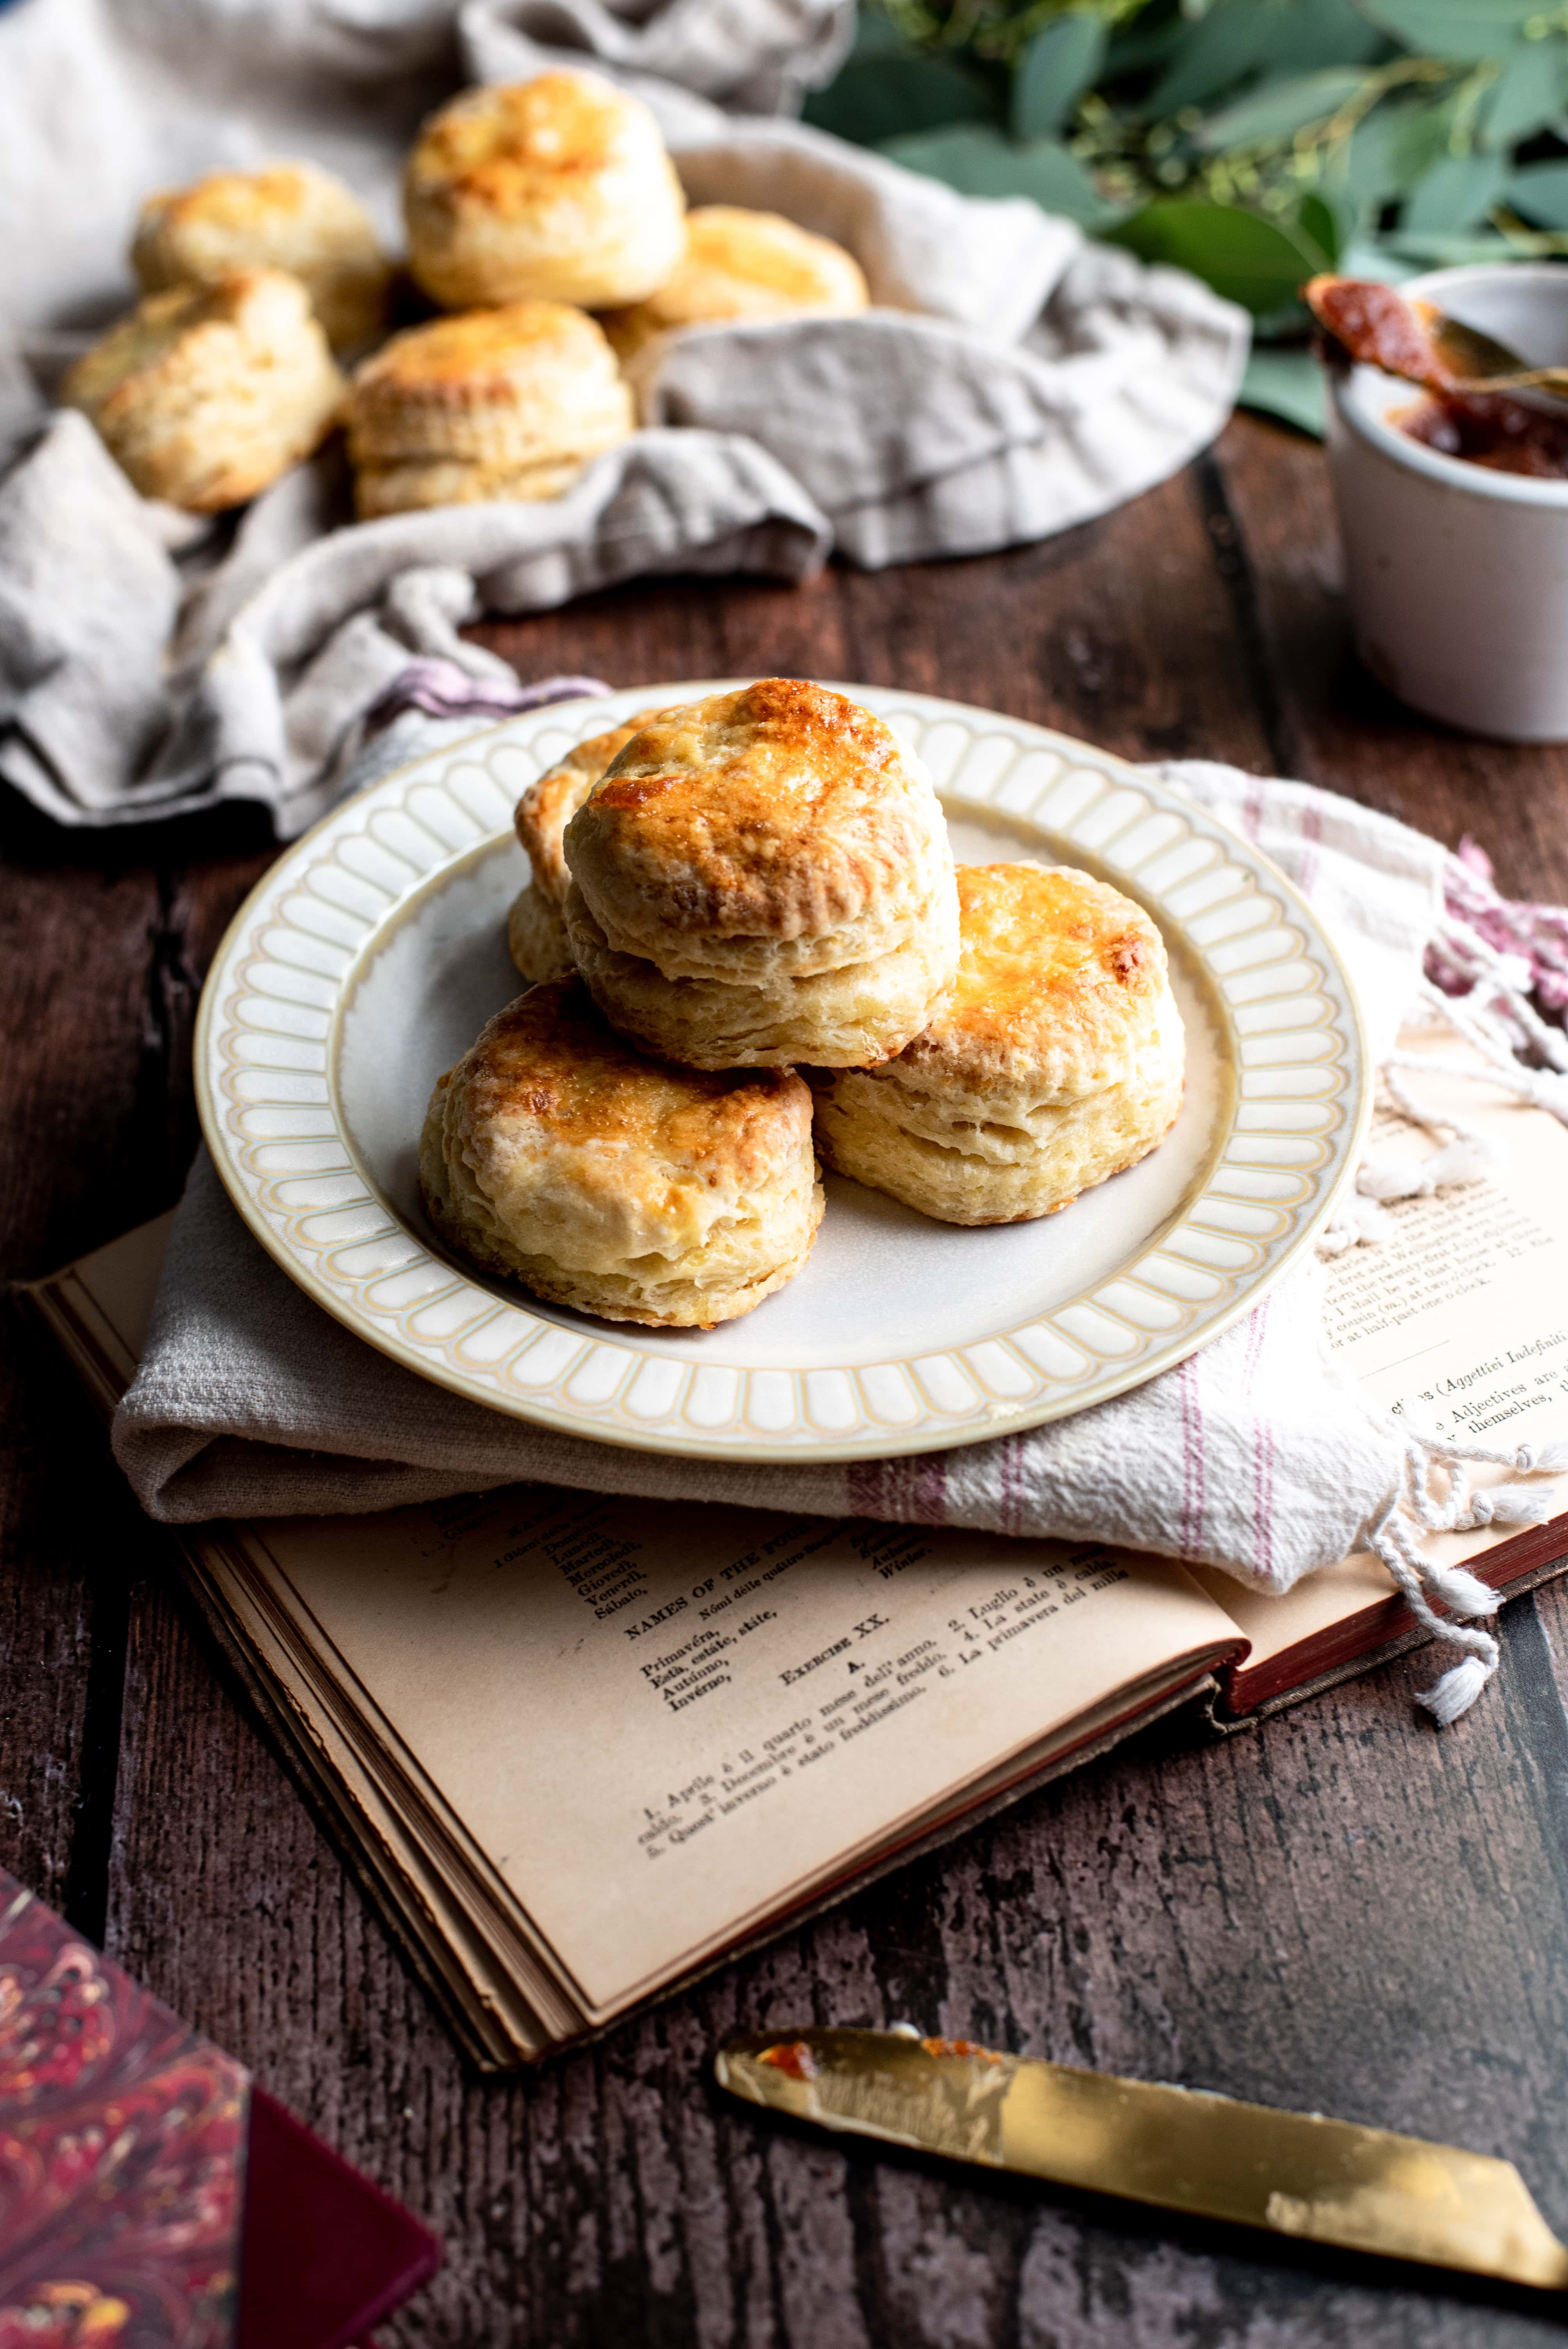 Stack of biscuits on a cream plate on top of a wood table with a old book.